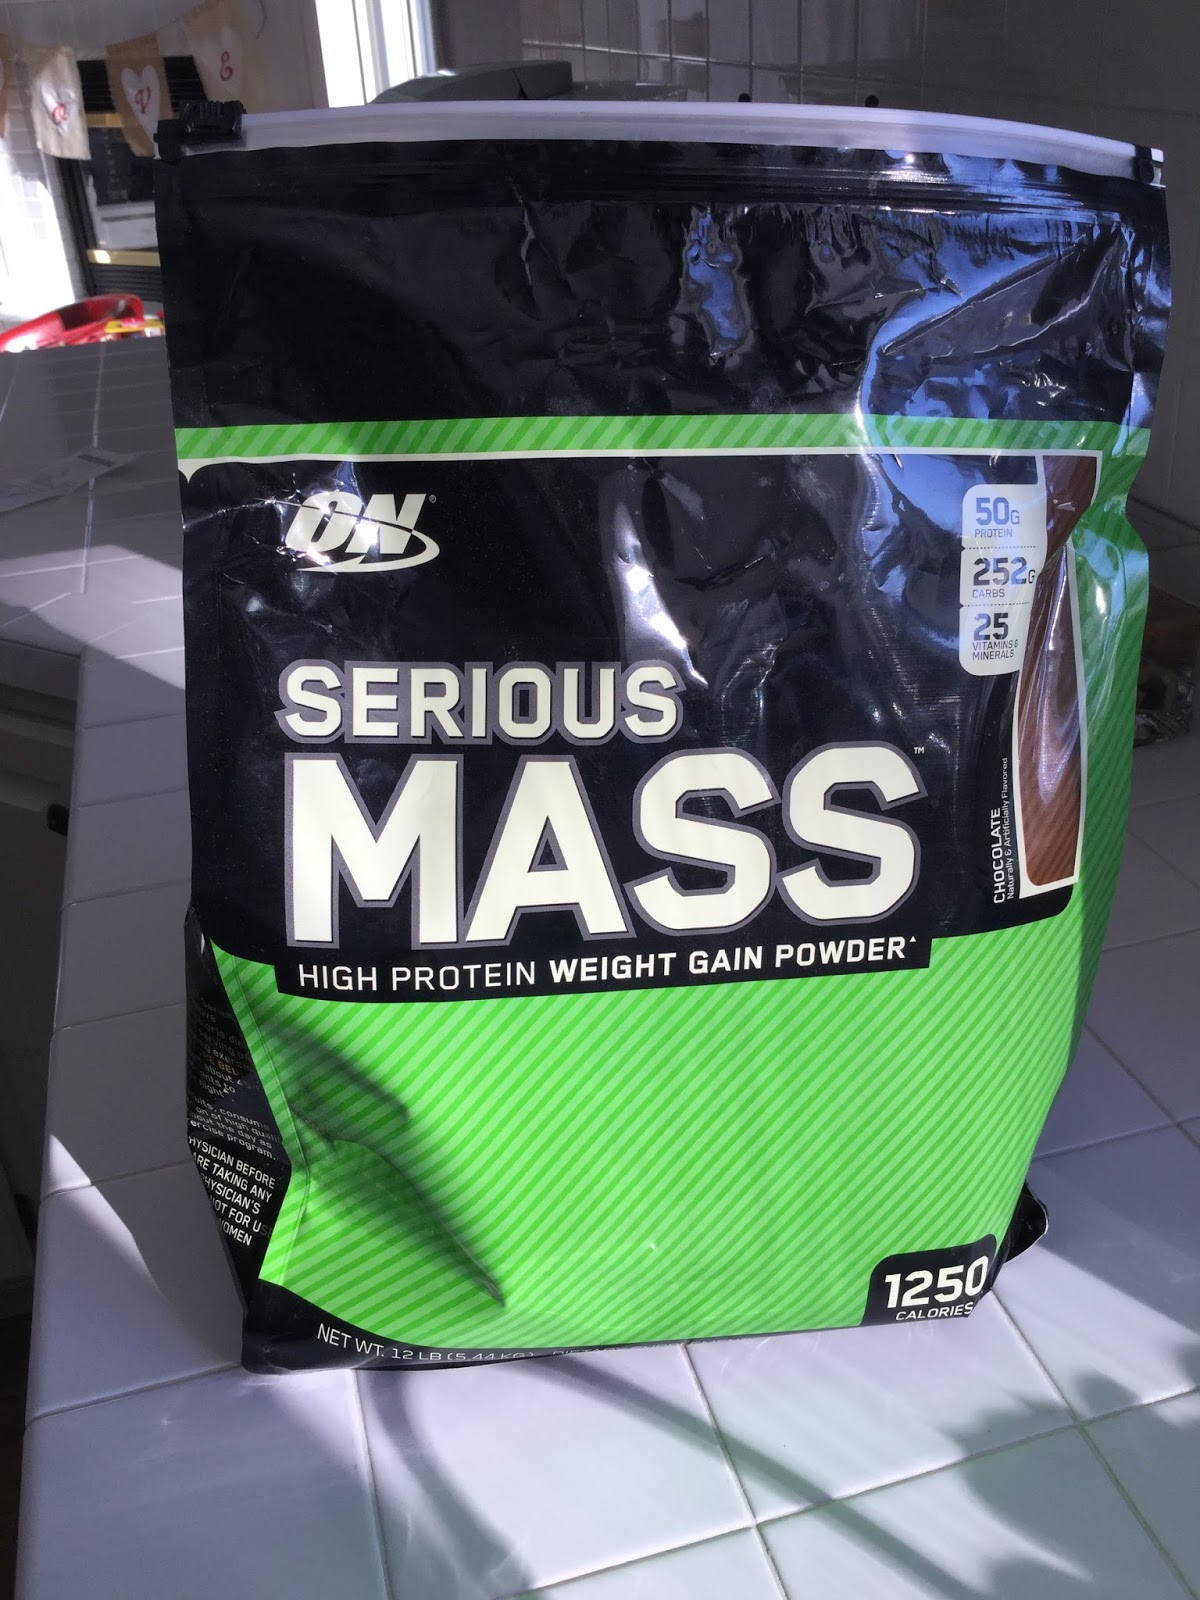 Nipperized Optimum Nutritions Serious Mass 12lbs Nutrition Gainer Is My Go To At The Moment Its Cheap Packs A Whopping 1250 Calories In Serving And Keeps Me Meeting